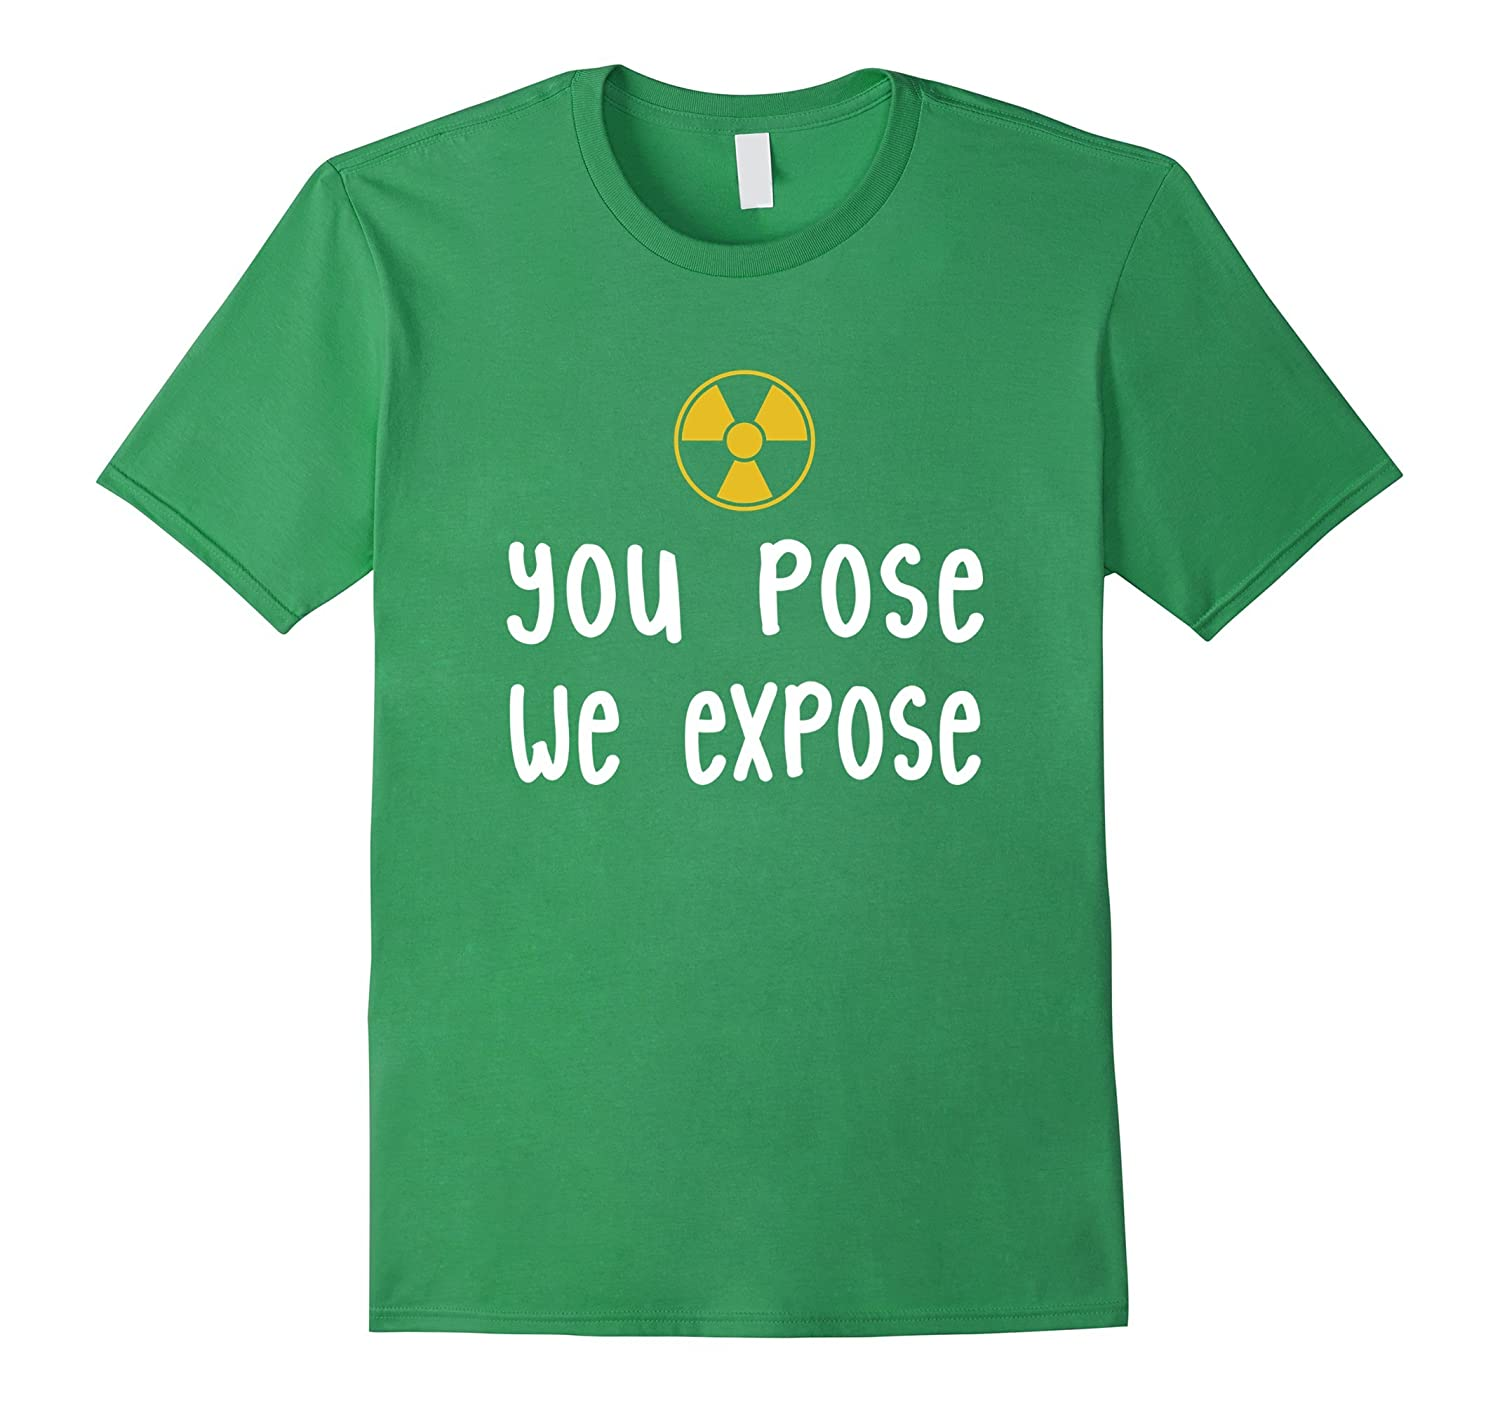 X-Ray Tech T-Shirt, You Pose We Expose X-Ray Scan Radiology